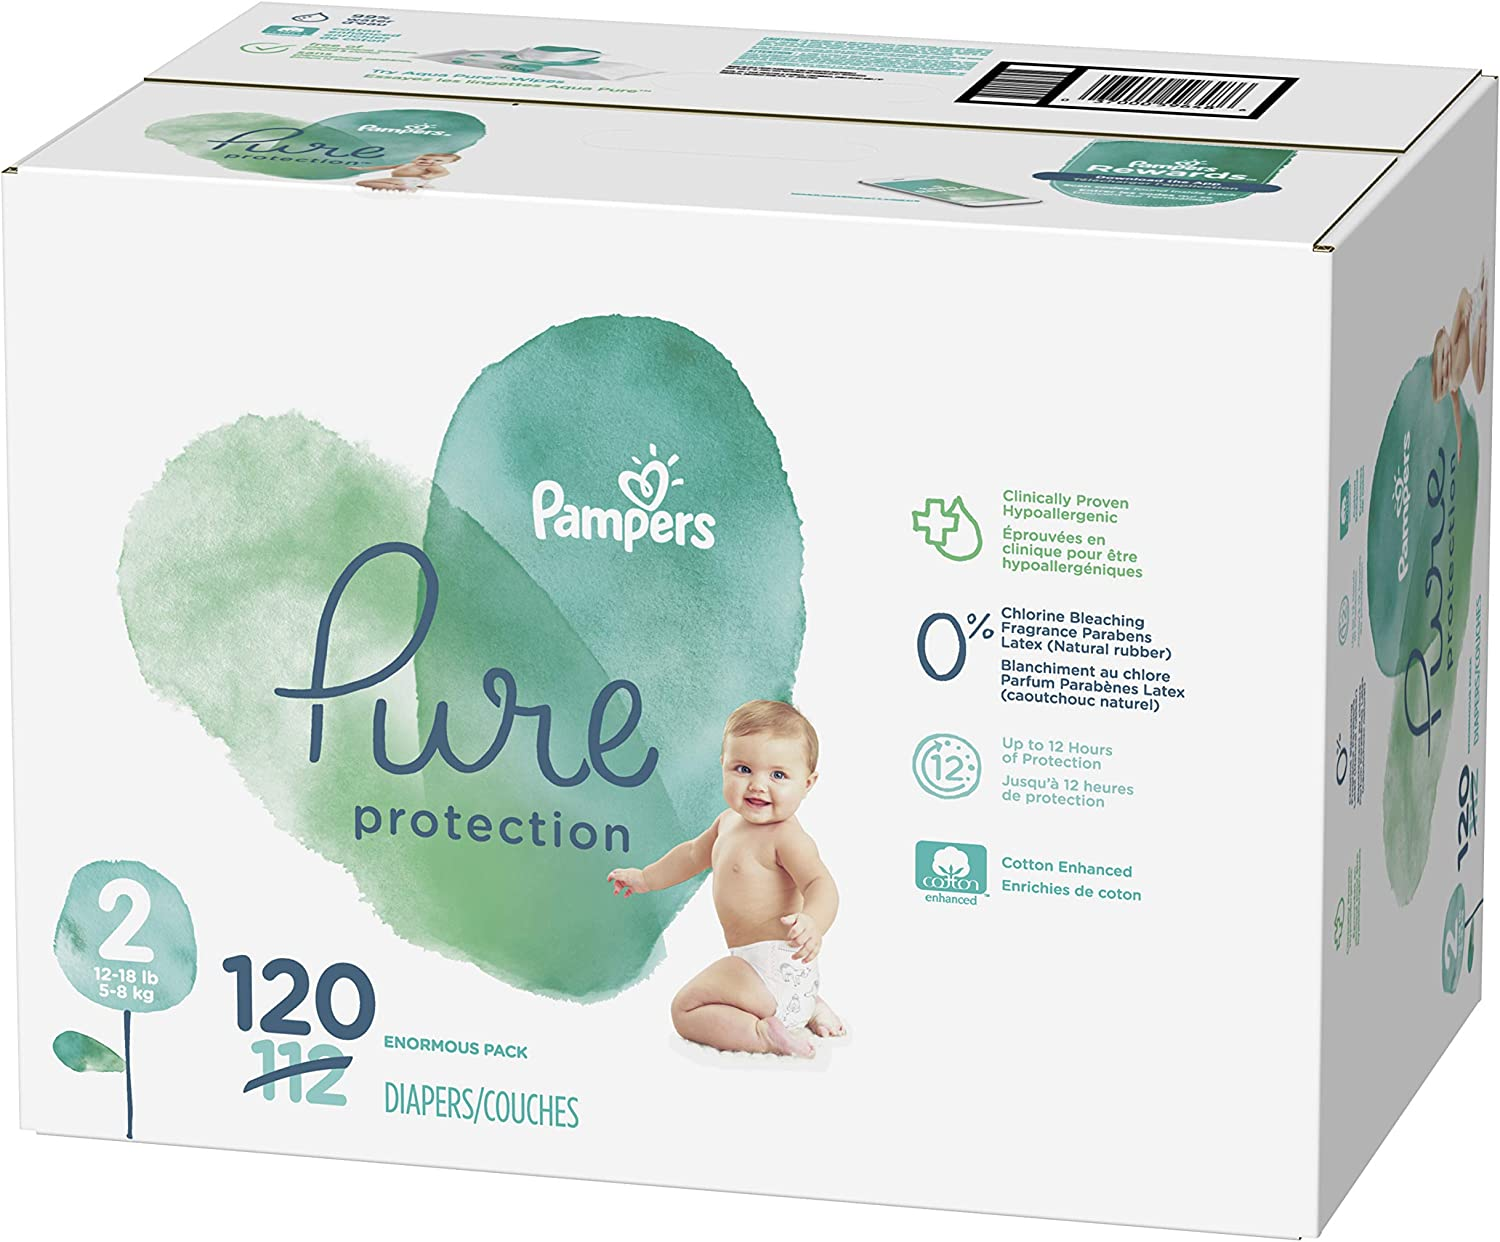 Diapers Size 2, 120 Count - Pampers Pure Protection Disposable Baby Diapers, Enormous Pack